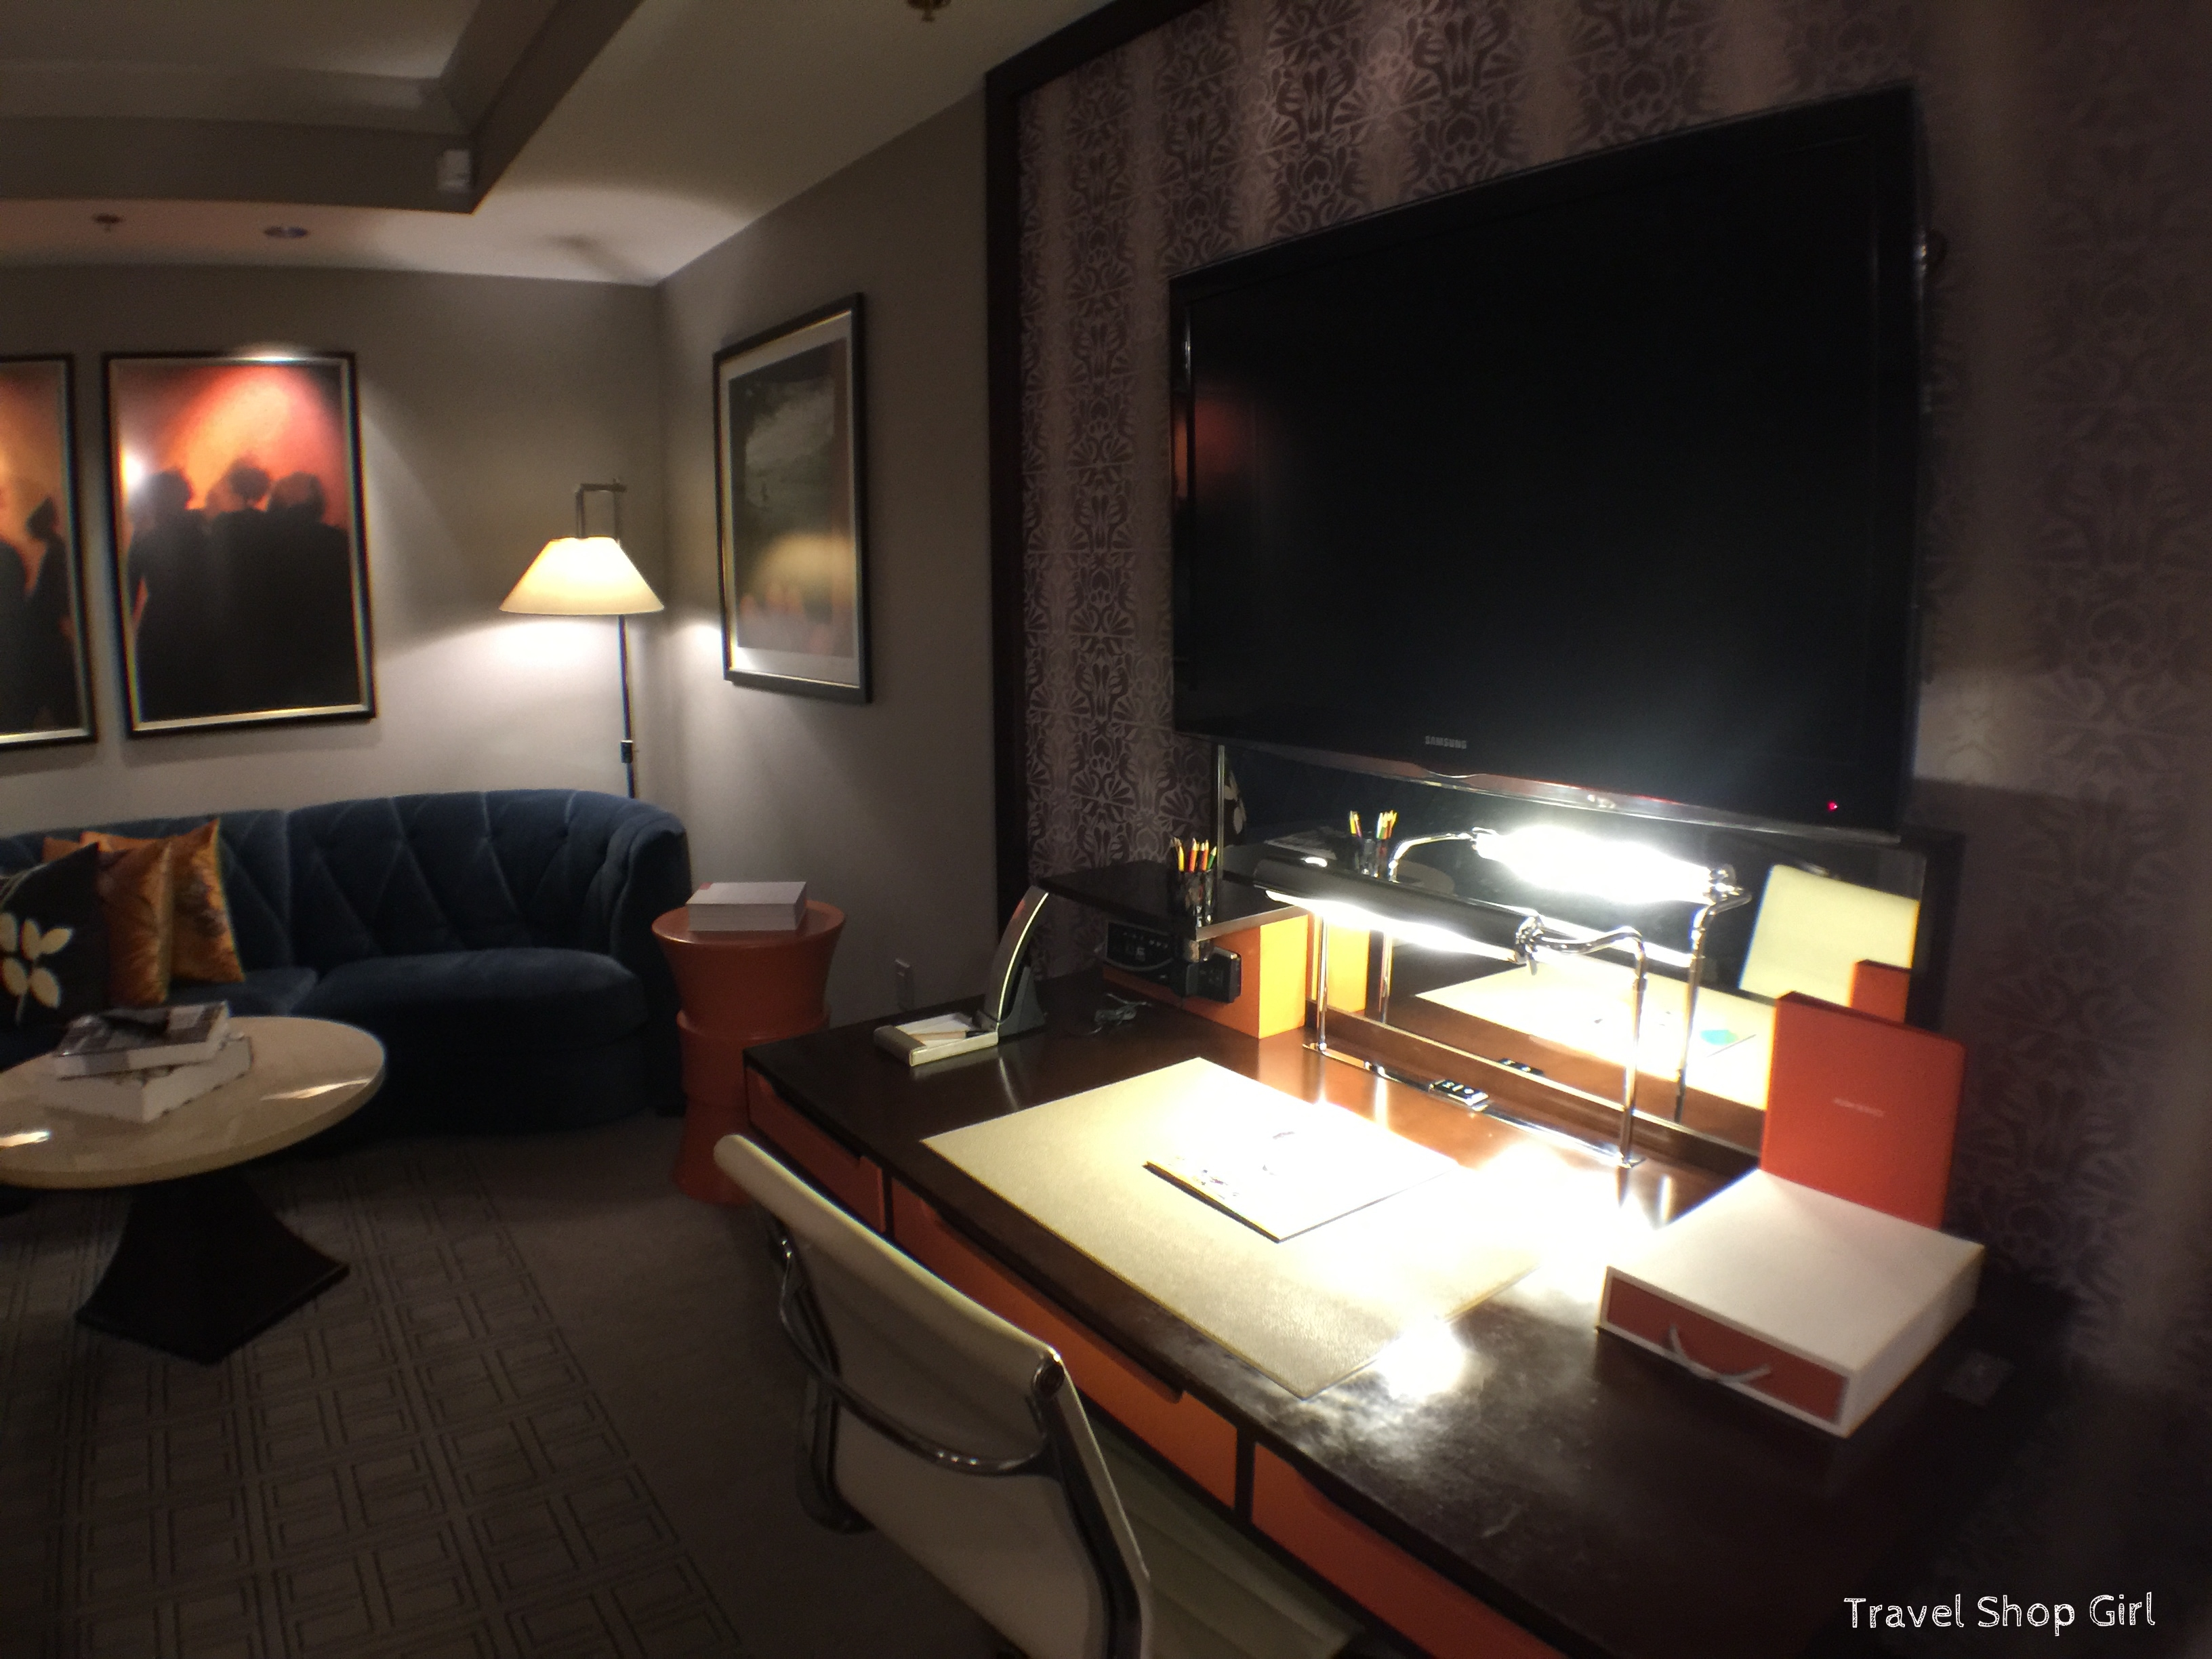 Room Review: The Cosmopolitan Las Vegas